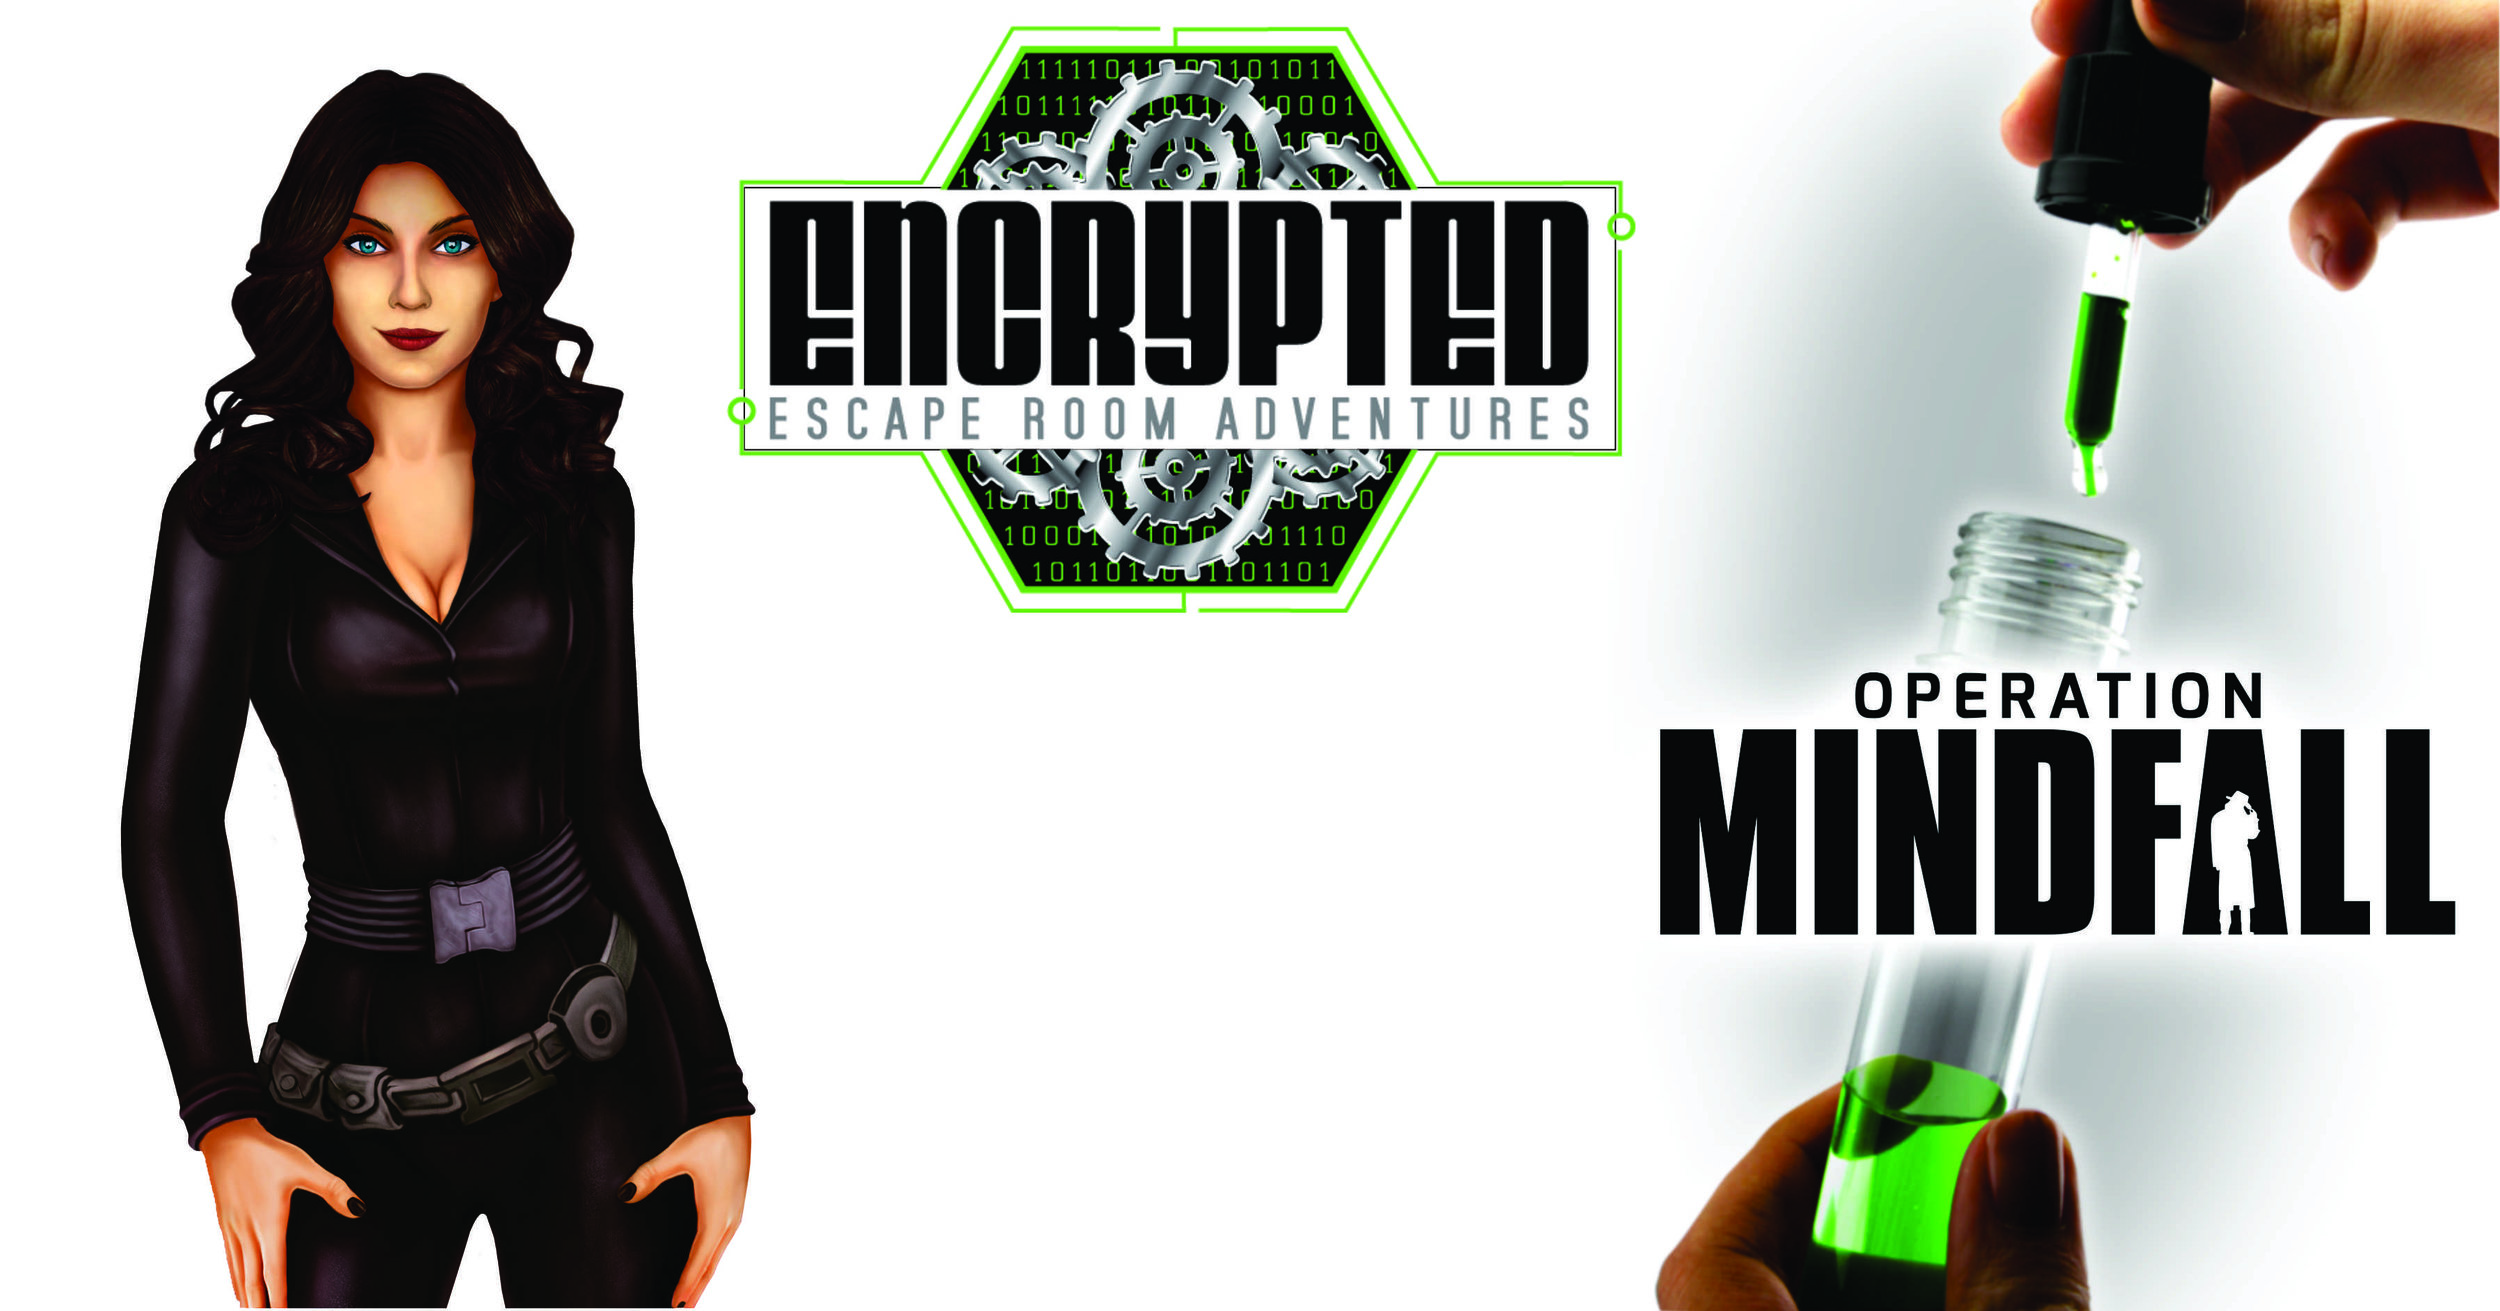 Encrypted_Adventures_escape_room_clearwater_beach_encrypted_adventuress_mindfall_augmented_reality_treasure_hunt_virtual_game_cluetivity_game_operation_real_life.jpg